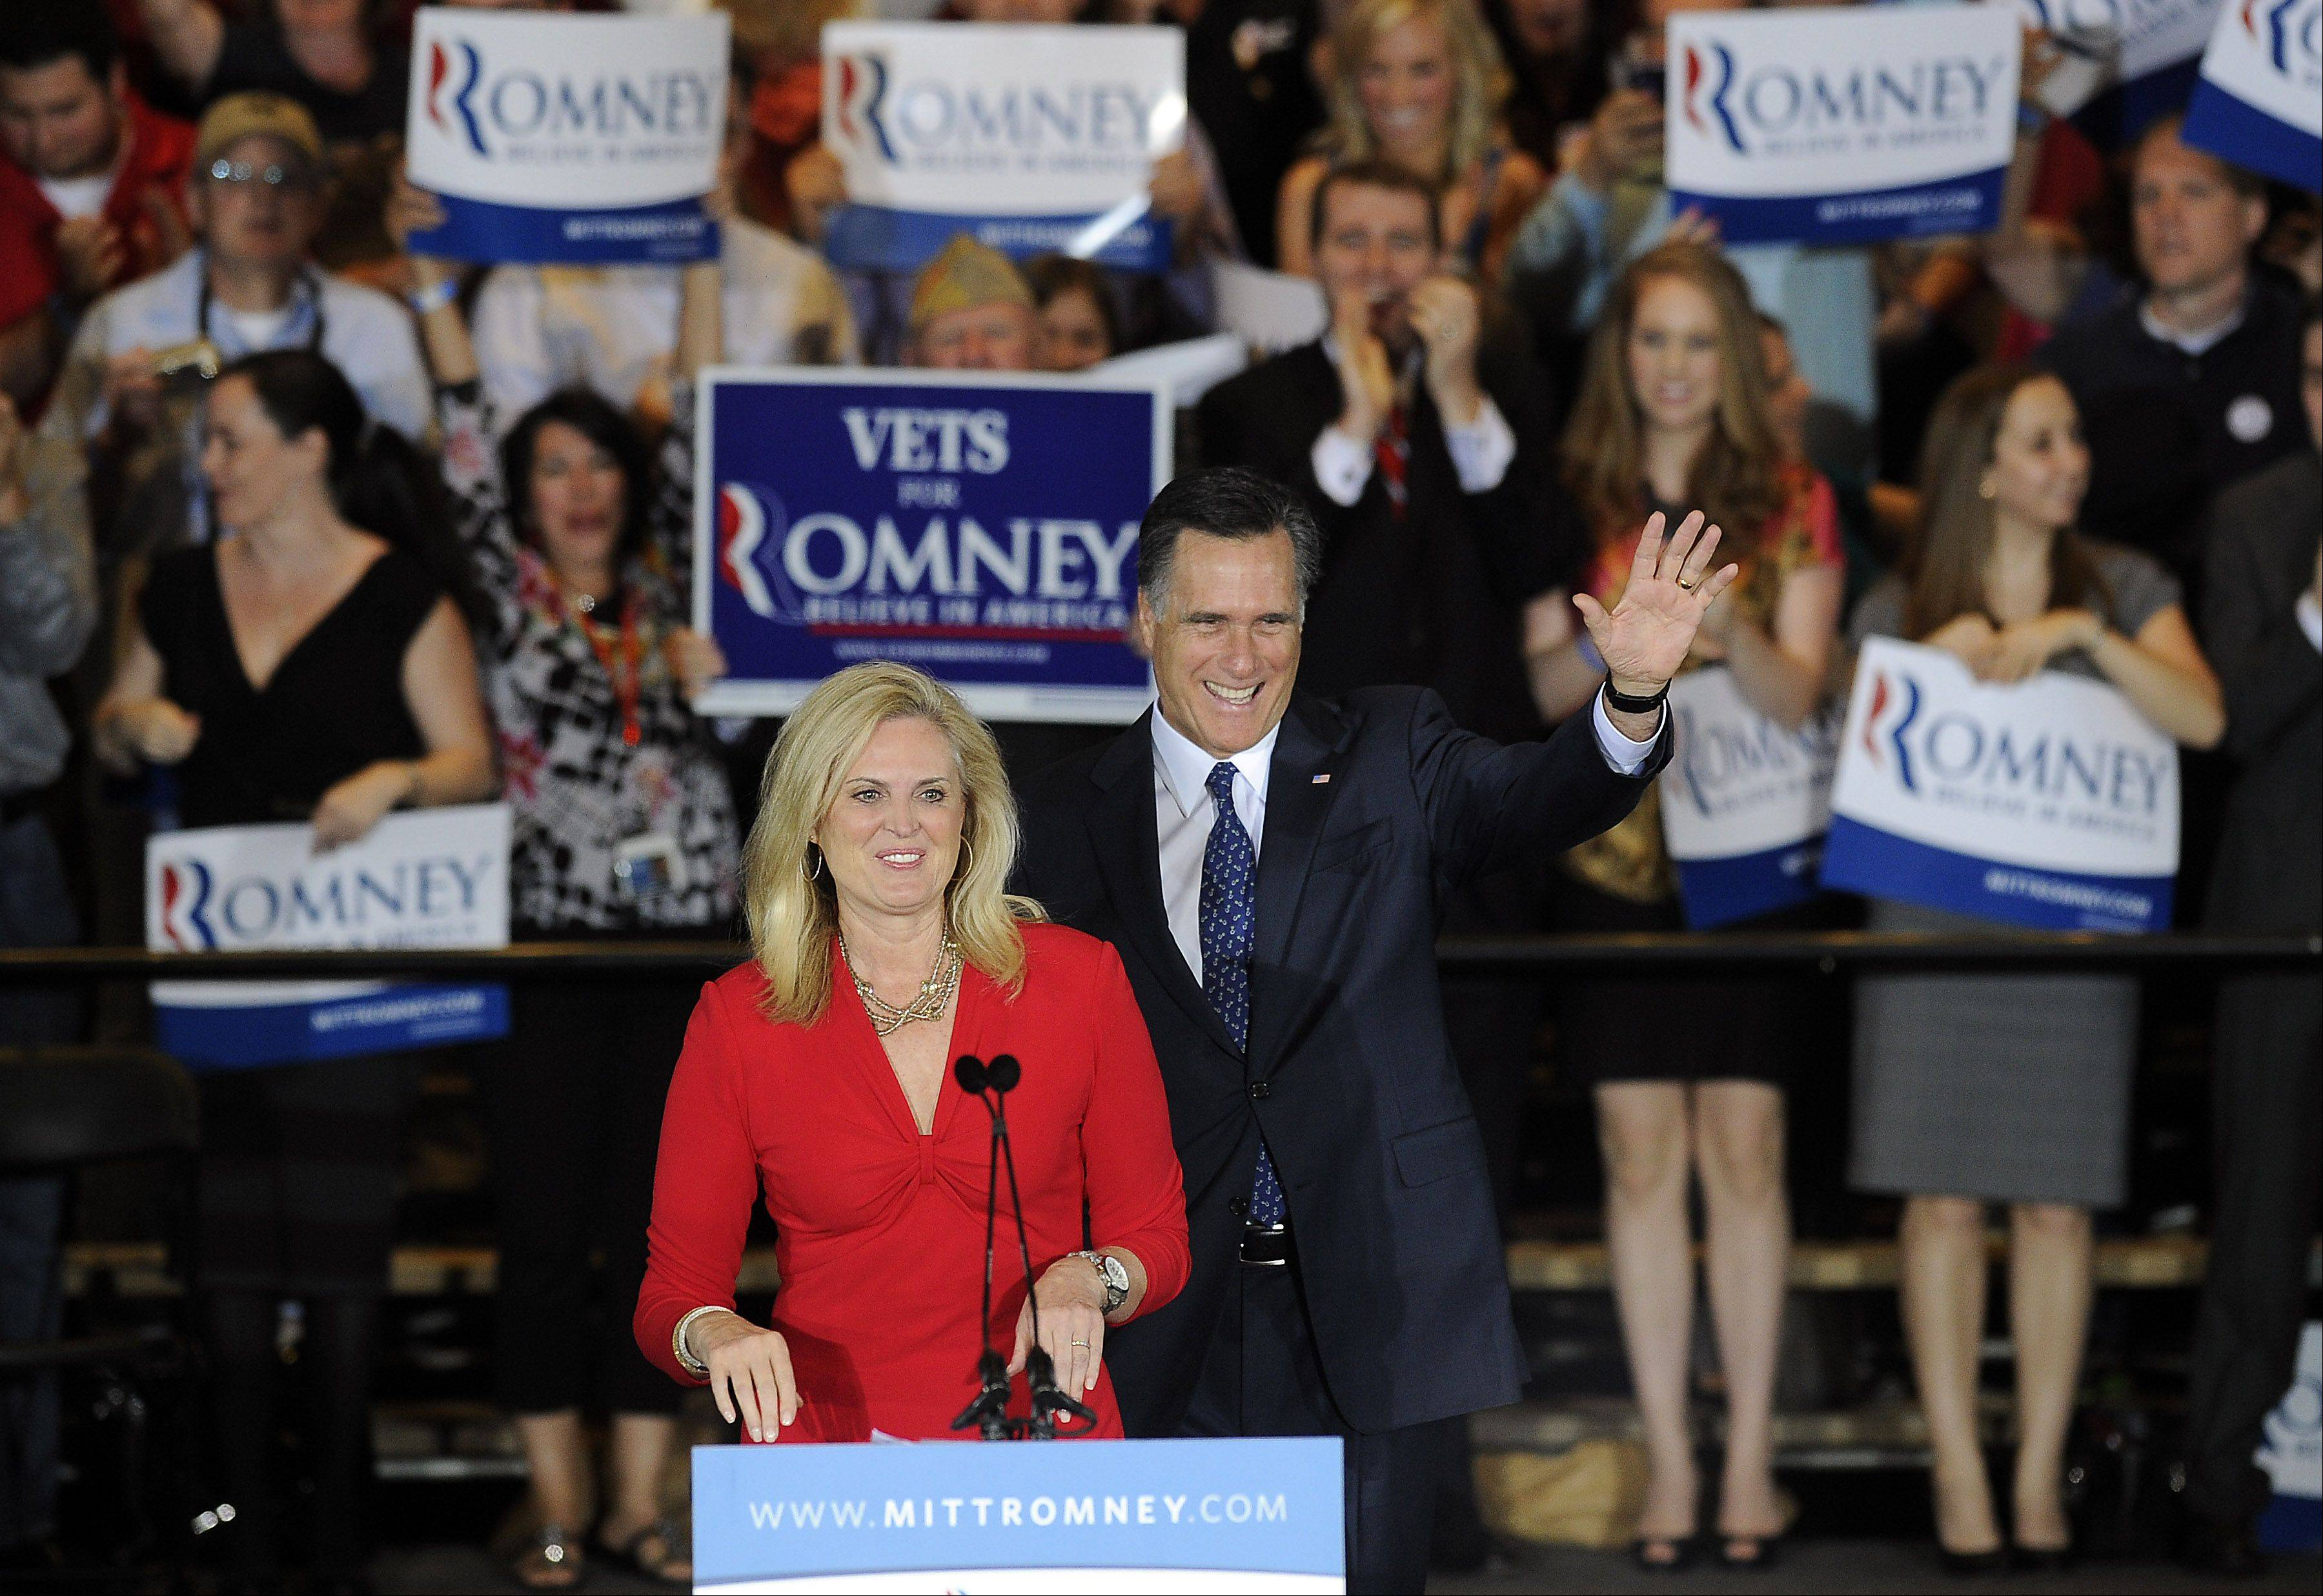 Romney routs Santorum in GOP primary